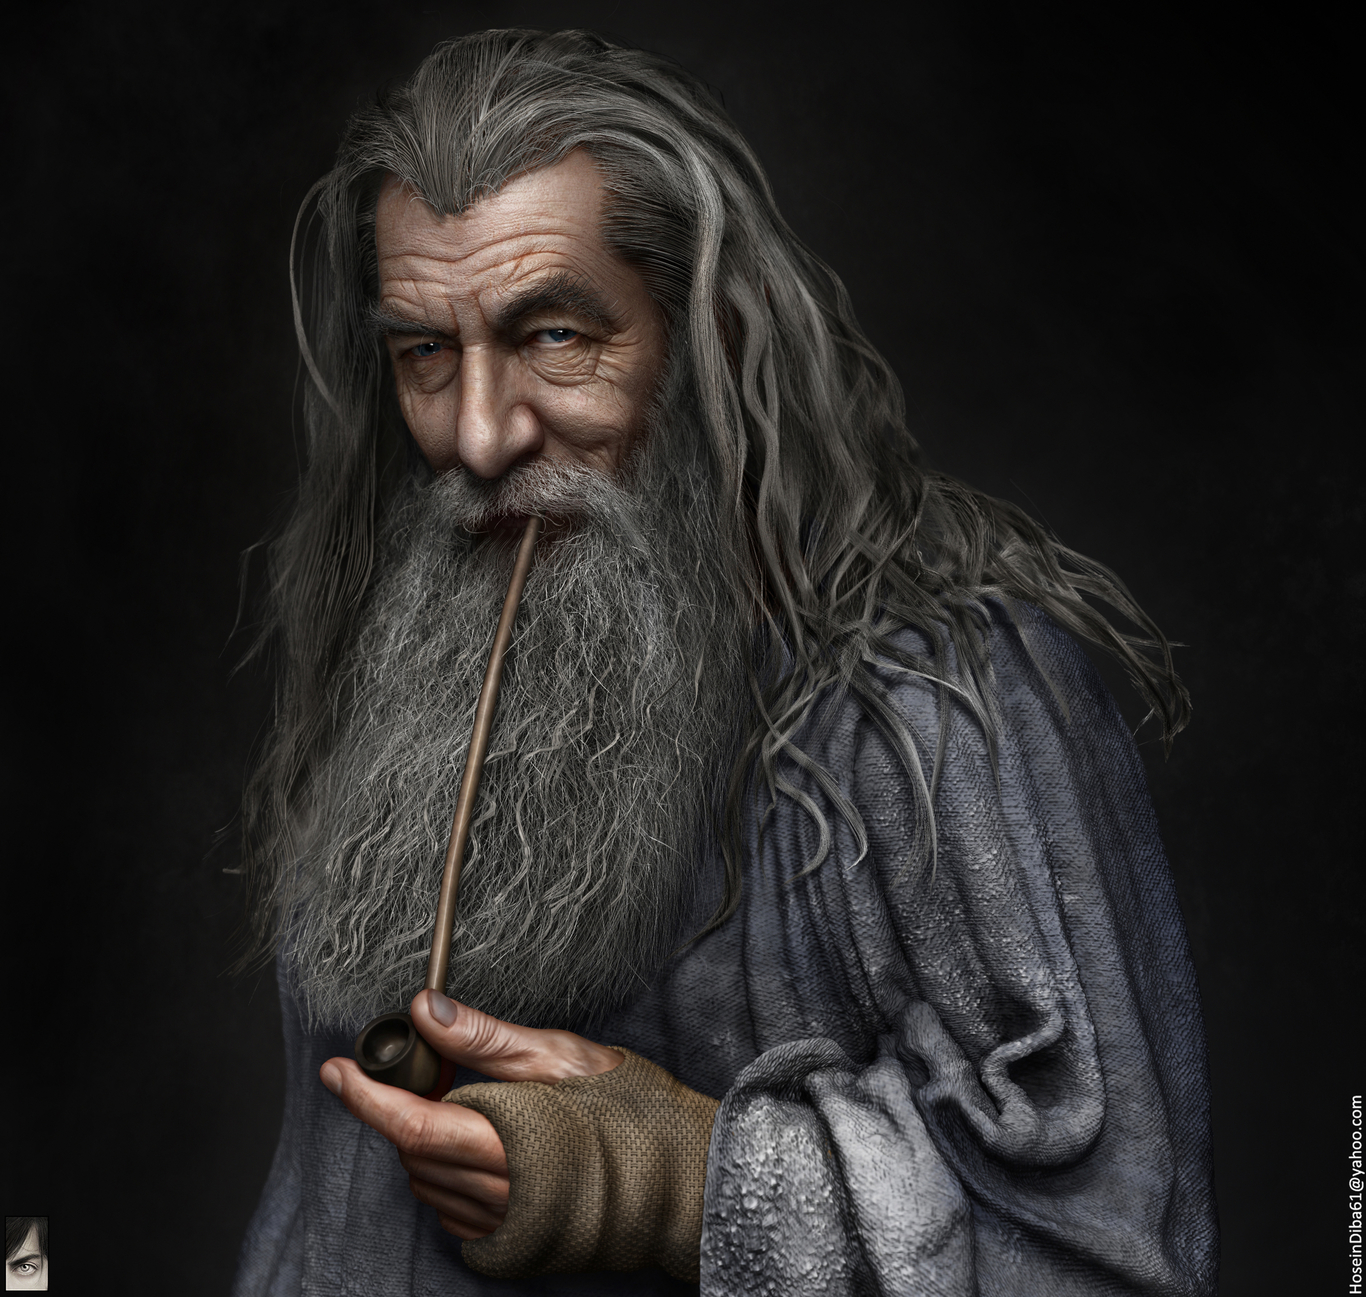 Hosseindiba gandalf the grey fin 1 7bf65427 gag1